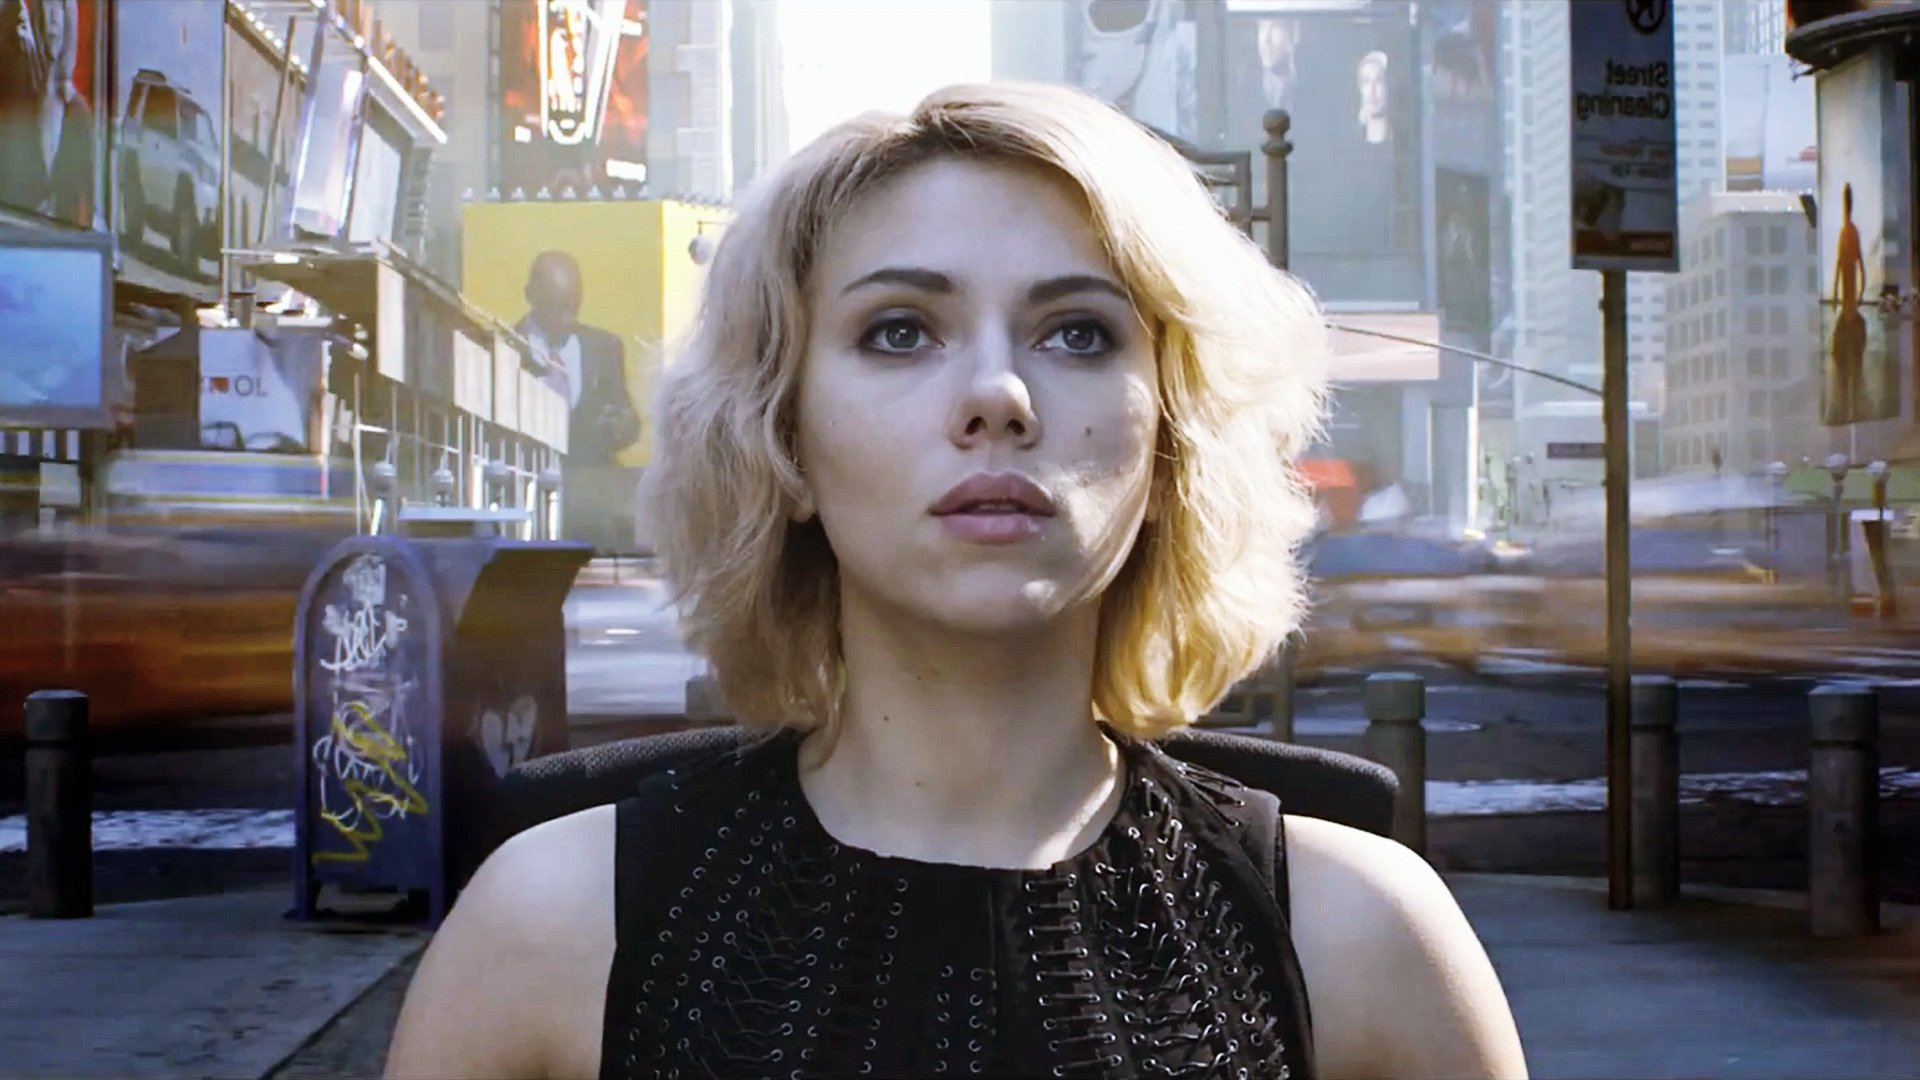 scarlett johansson lucy wallpaper - photo #24